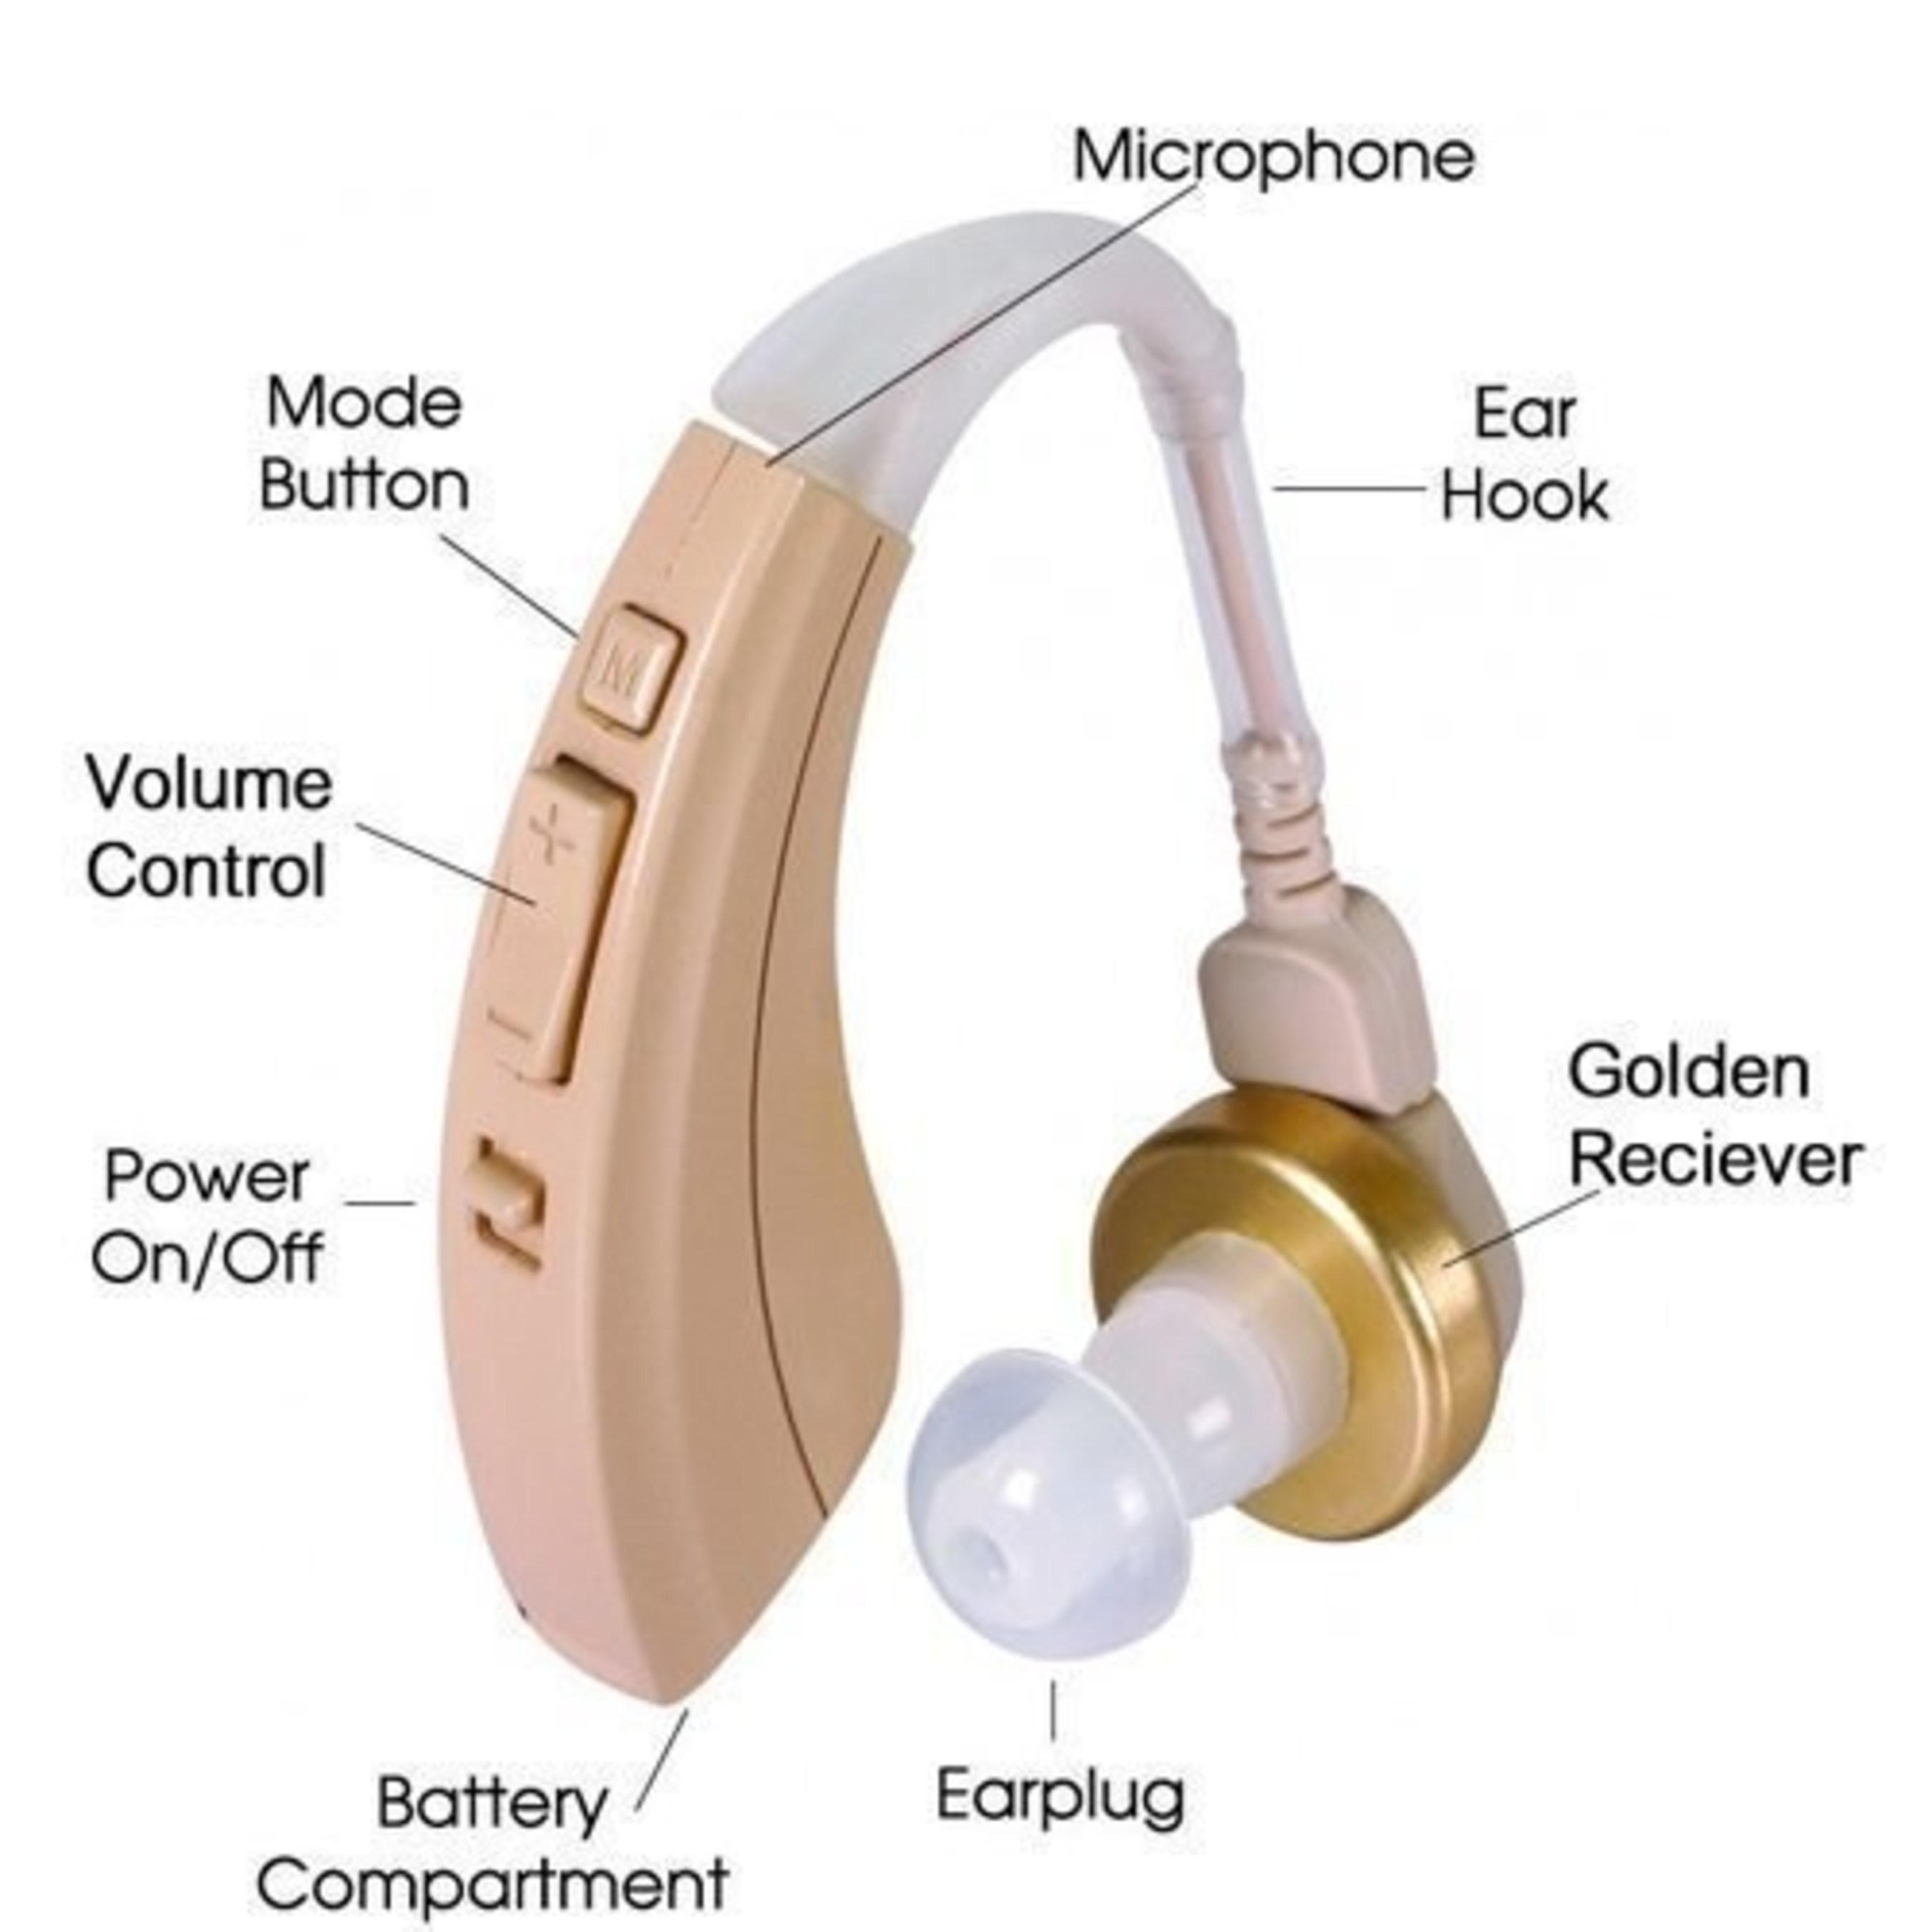 Affordable NewEAR Digital Hearing Amplifier Aids in Restoring Full